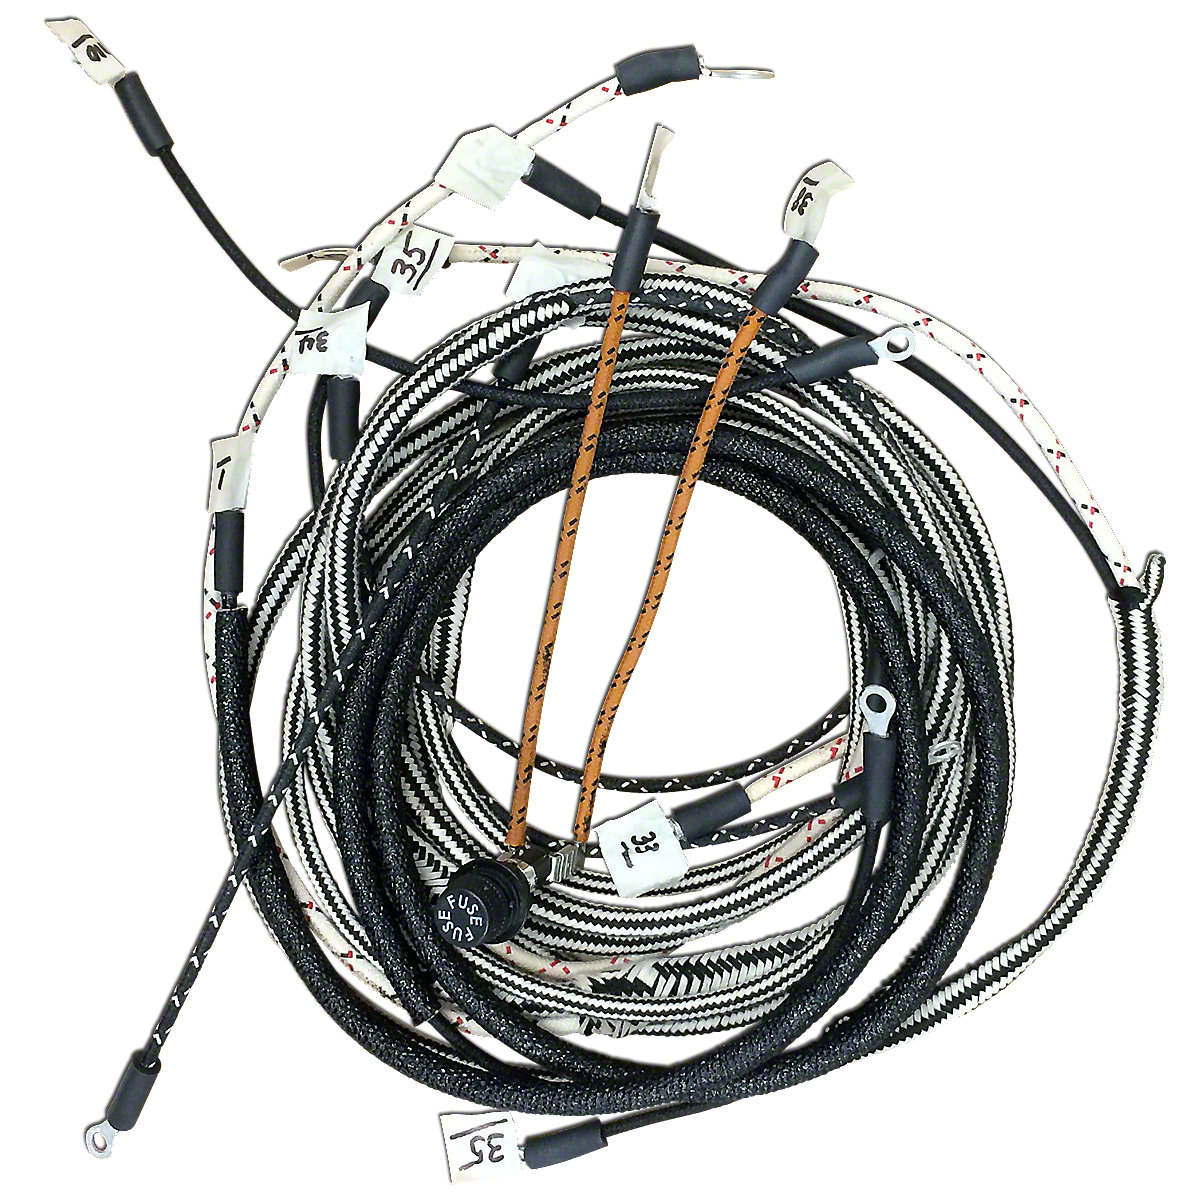 Eign17 4 Cyl Ih Distributorw Clips Farmall Super C Wiring Harness Kit For Tractors With 1 Wire Alternator